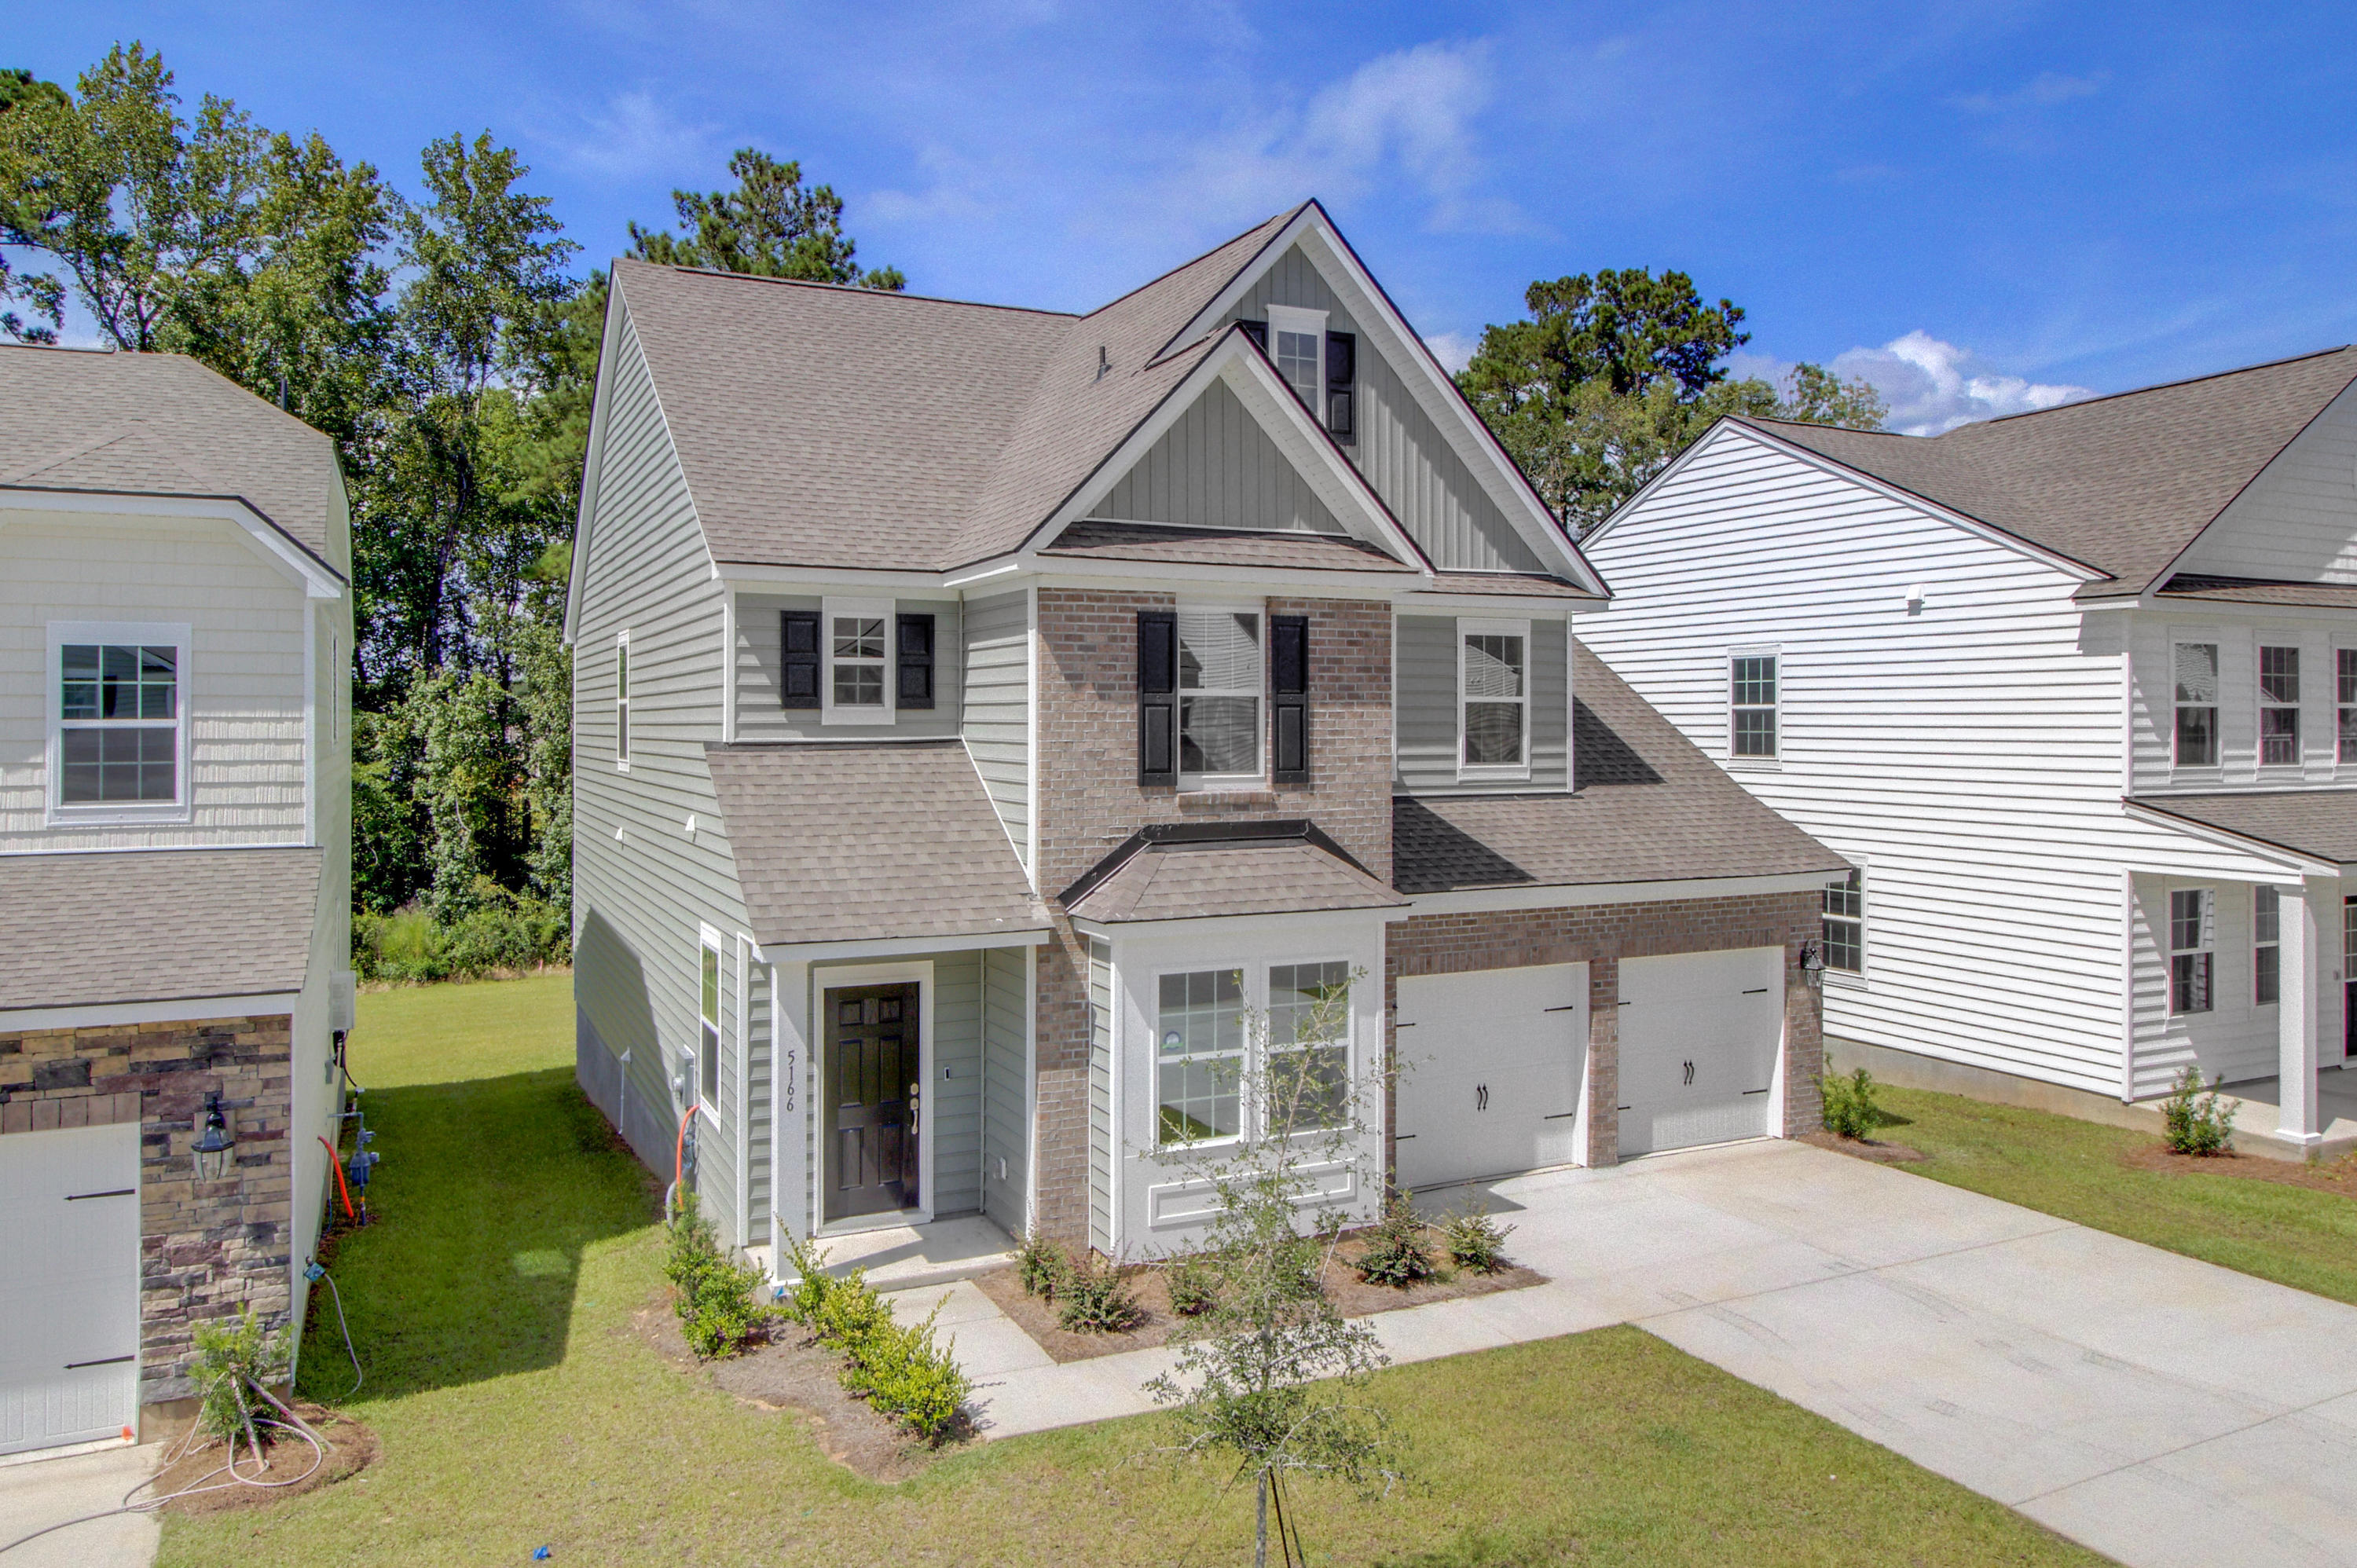 703 Squire Pope Road Summerville, SC 29486